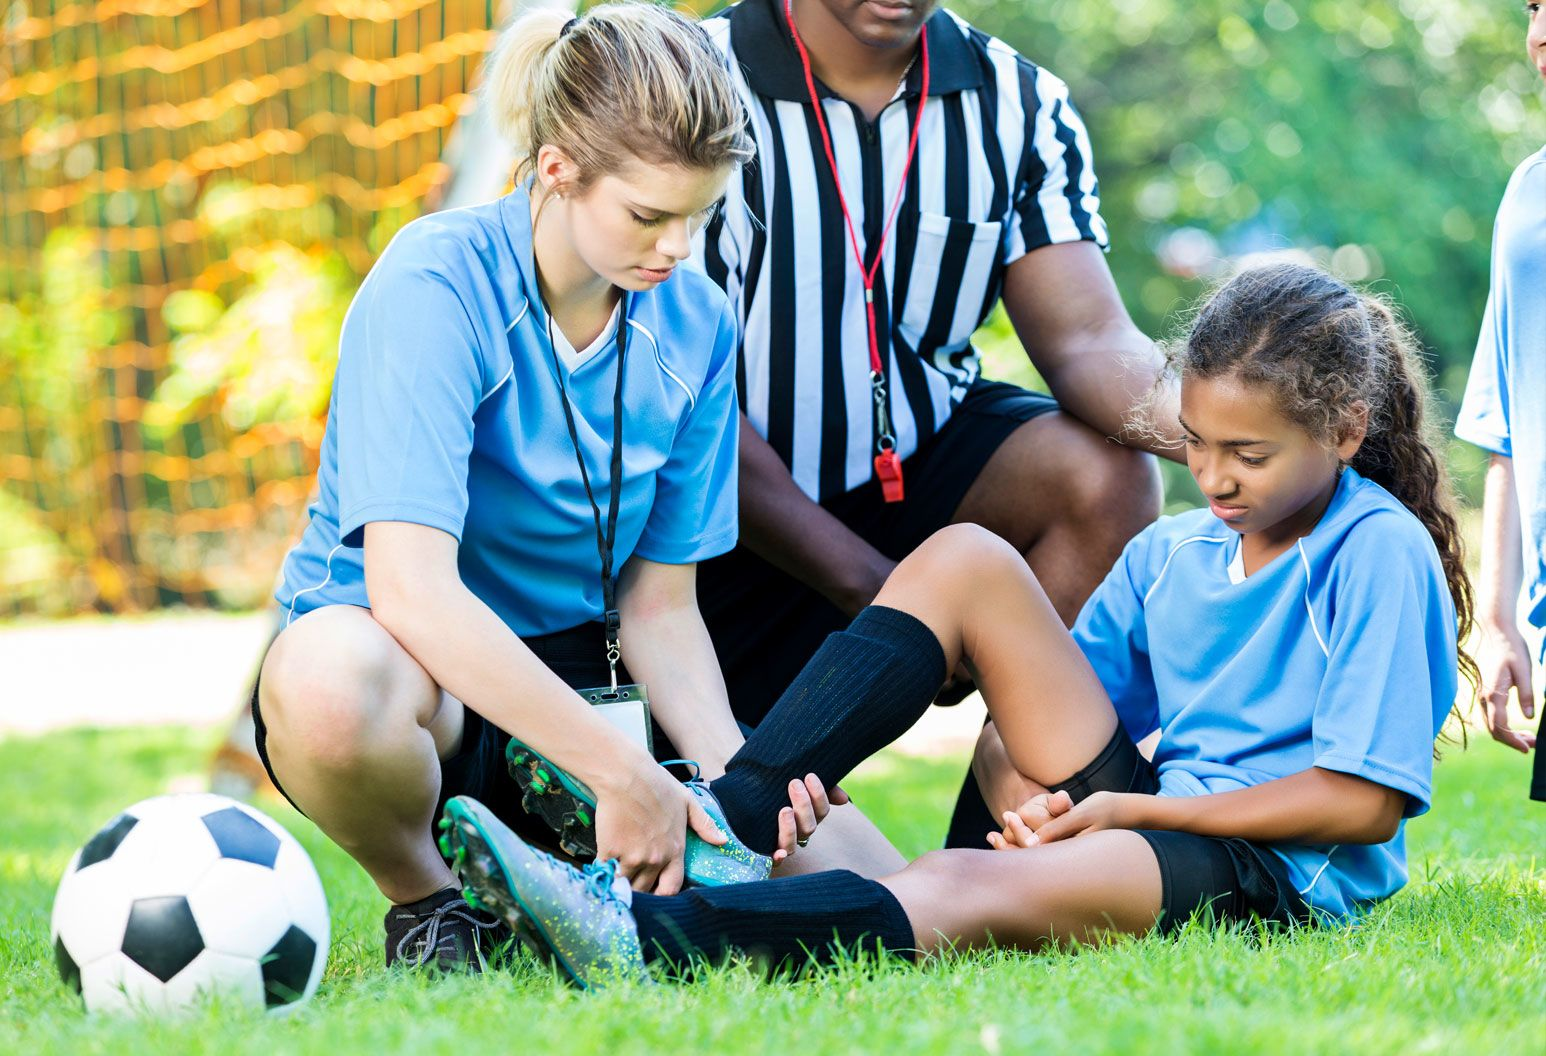 A young girl with an injured ankle sits on a soccer field. A woman is kneeling beside her, holding her ankle. A ref is also kneeling beside them.